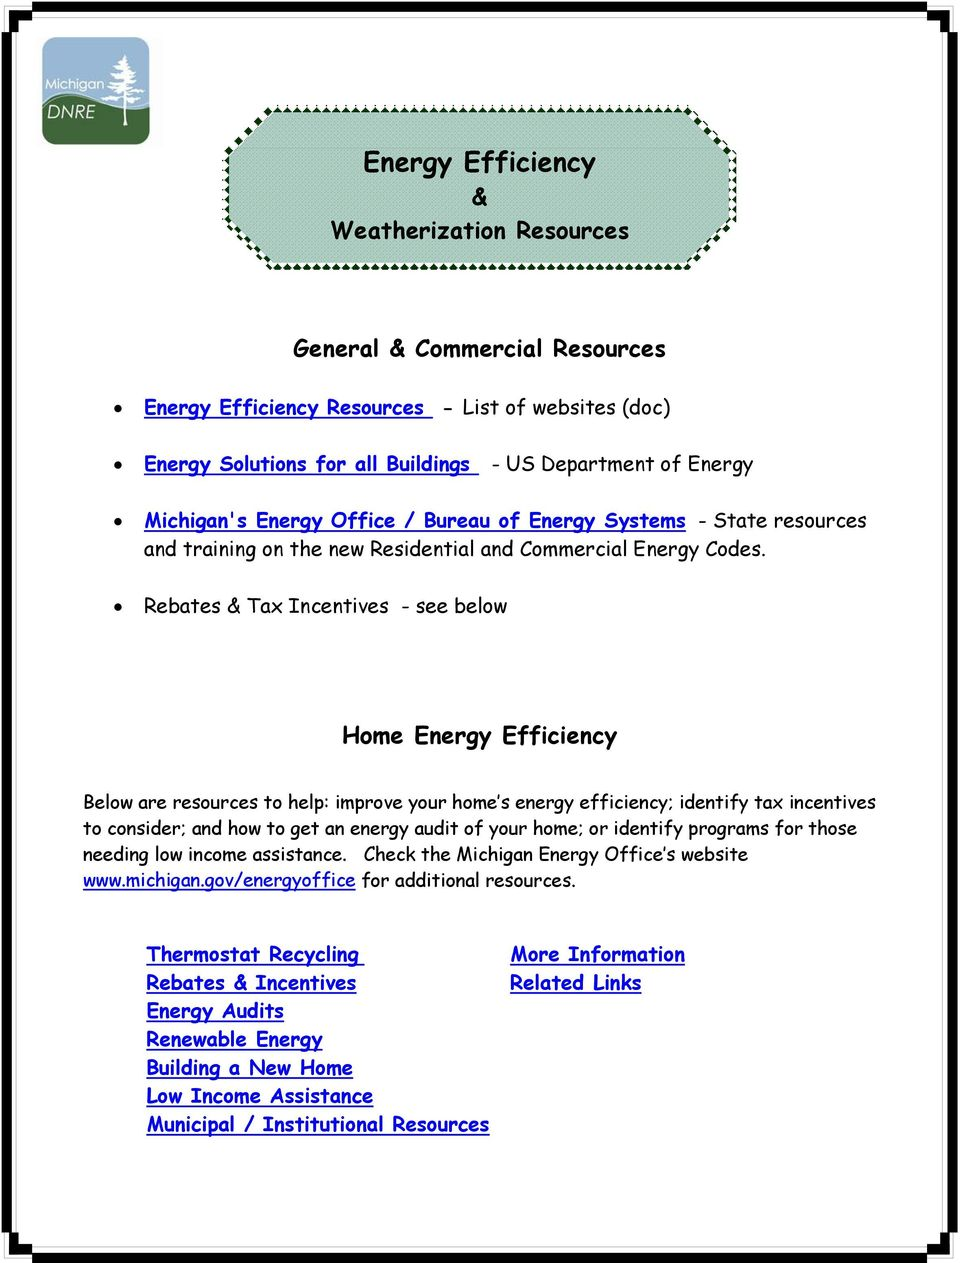 Rebates & Tax Incentives - see below Home Energy Efficiency Below are resources to help: improve your home s energy efficiency; identify tax incentives to consider; and how to get an energy audit of